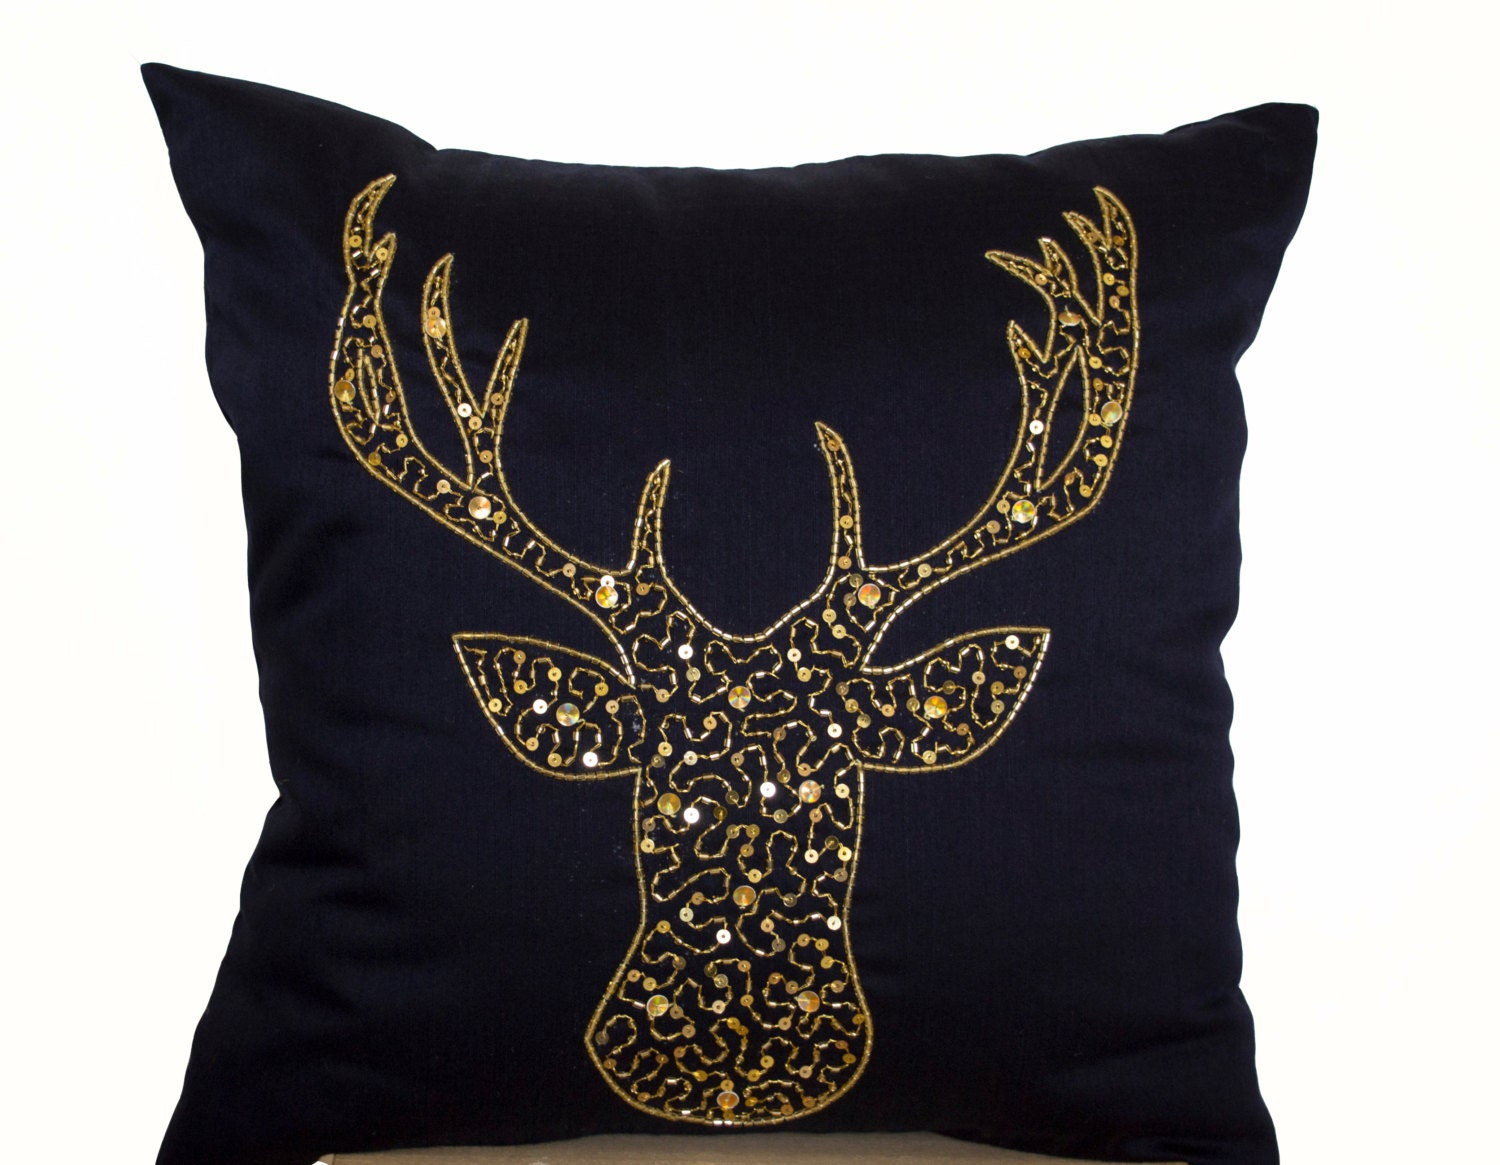 Deer Pillows Animal pillow stag embroidered in gold sequin